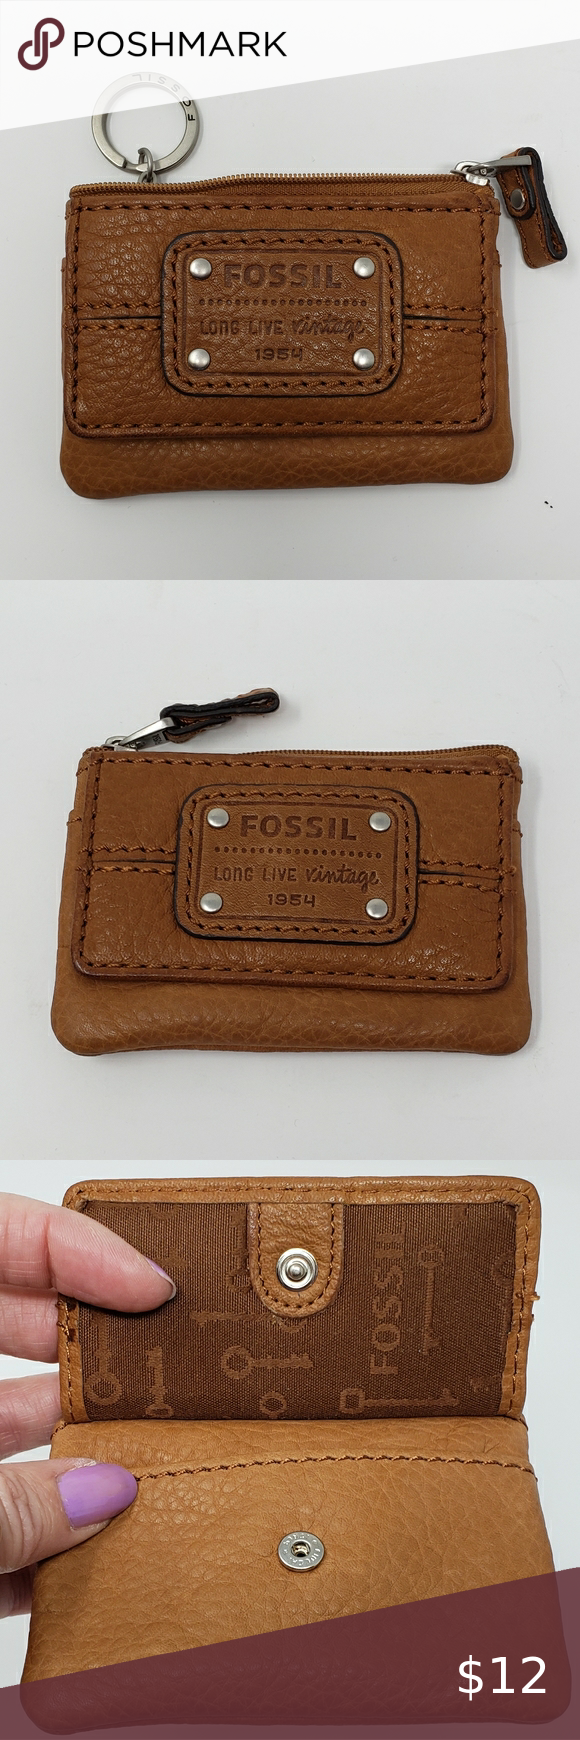 Fossil Small Key-Per ID Card Holder